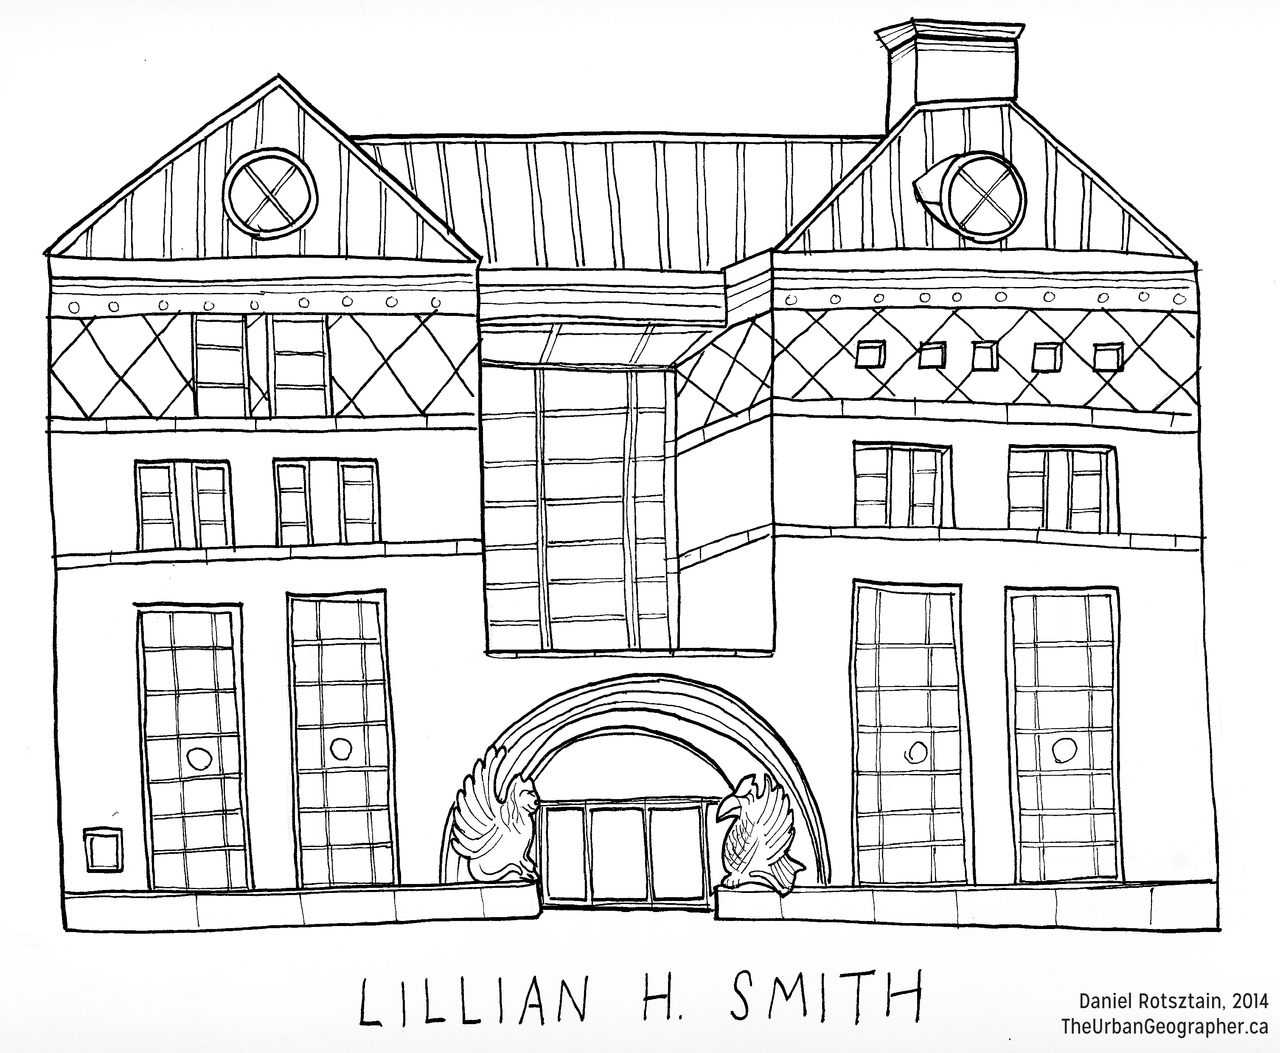 An Illustration of Lillian H. Smith branch, Toronto Public Library